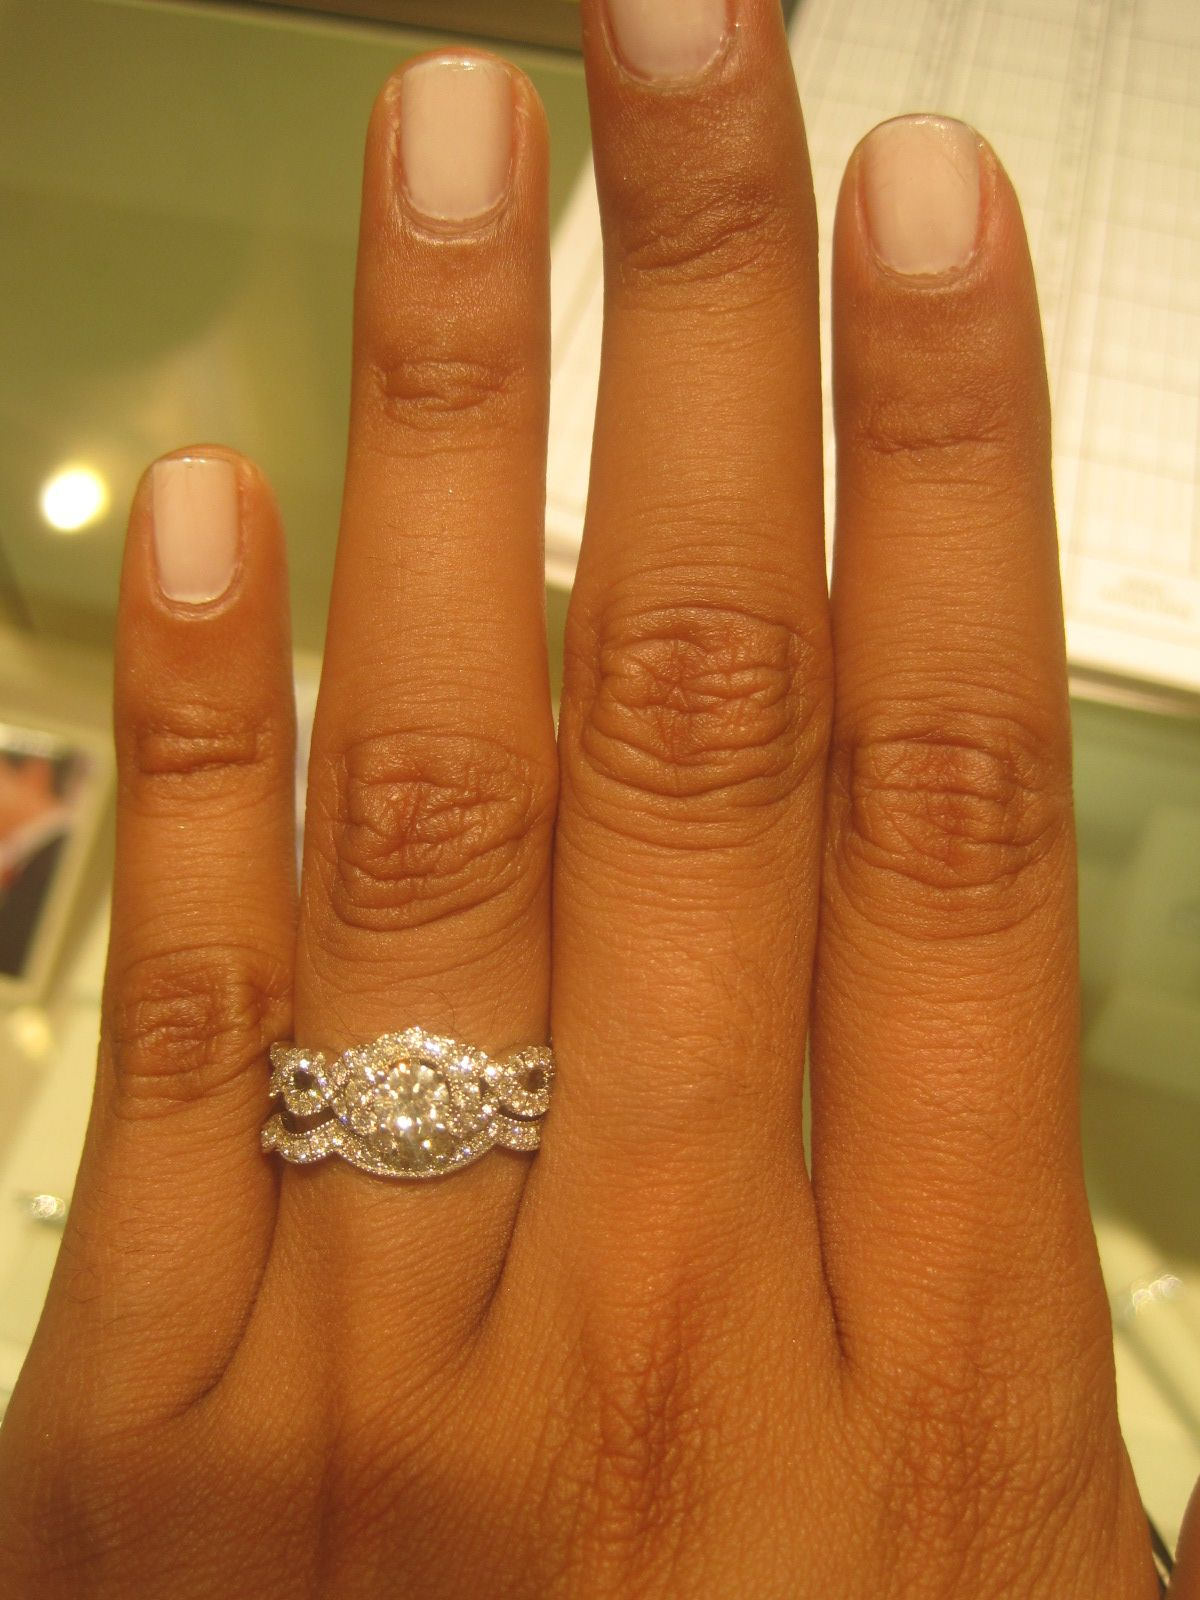 tried on this ring by neil lane love neil lane